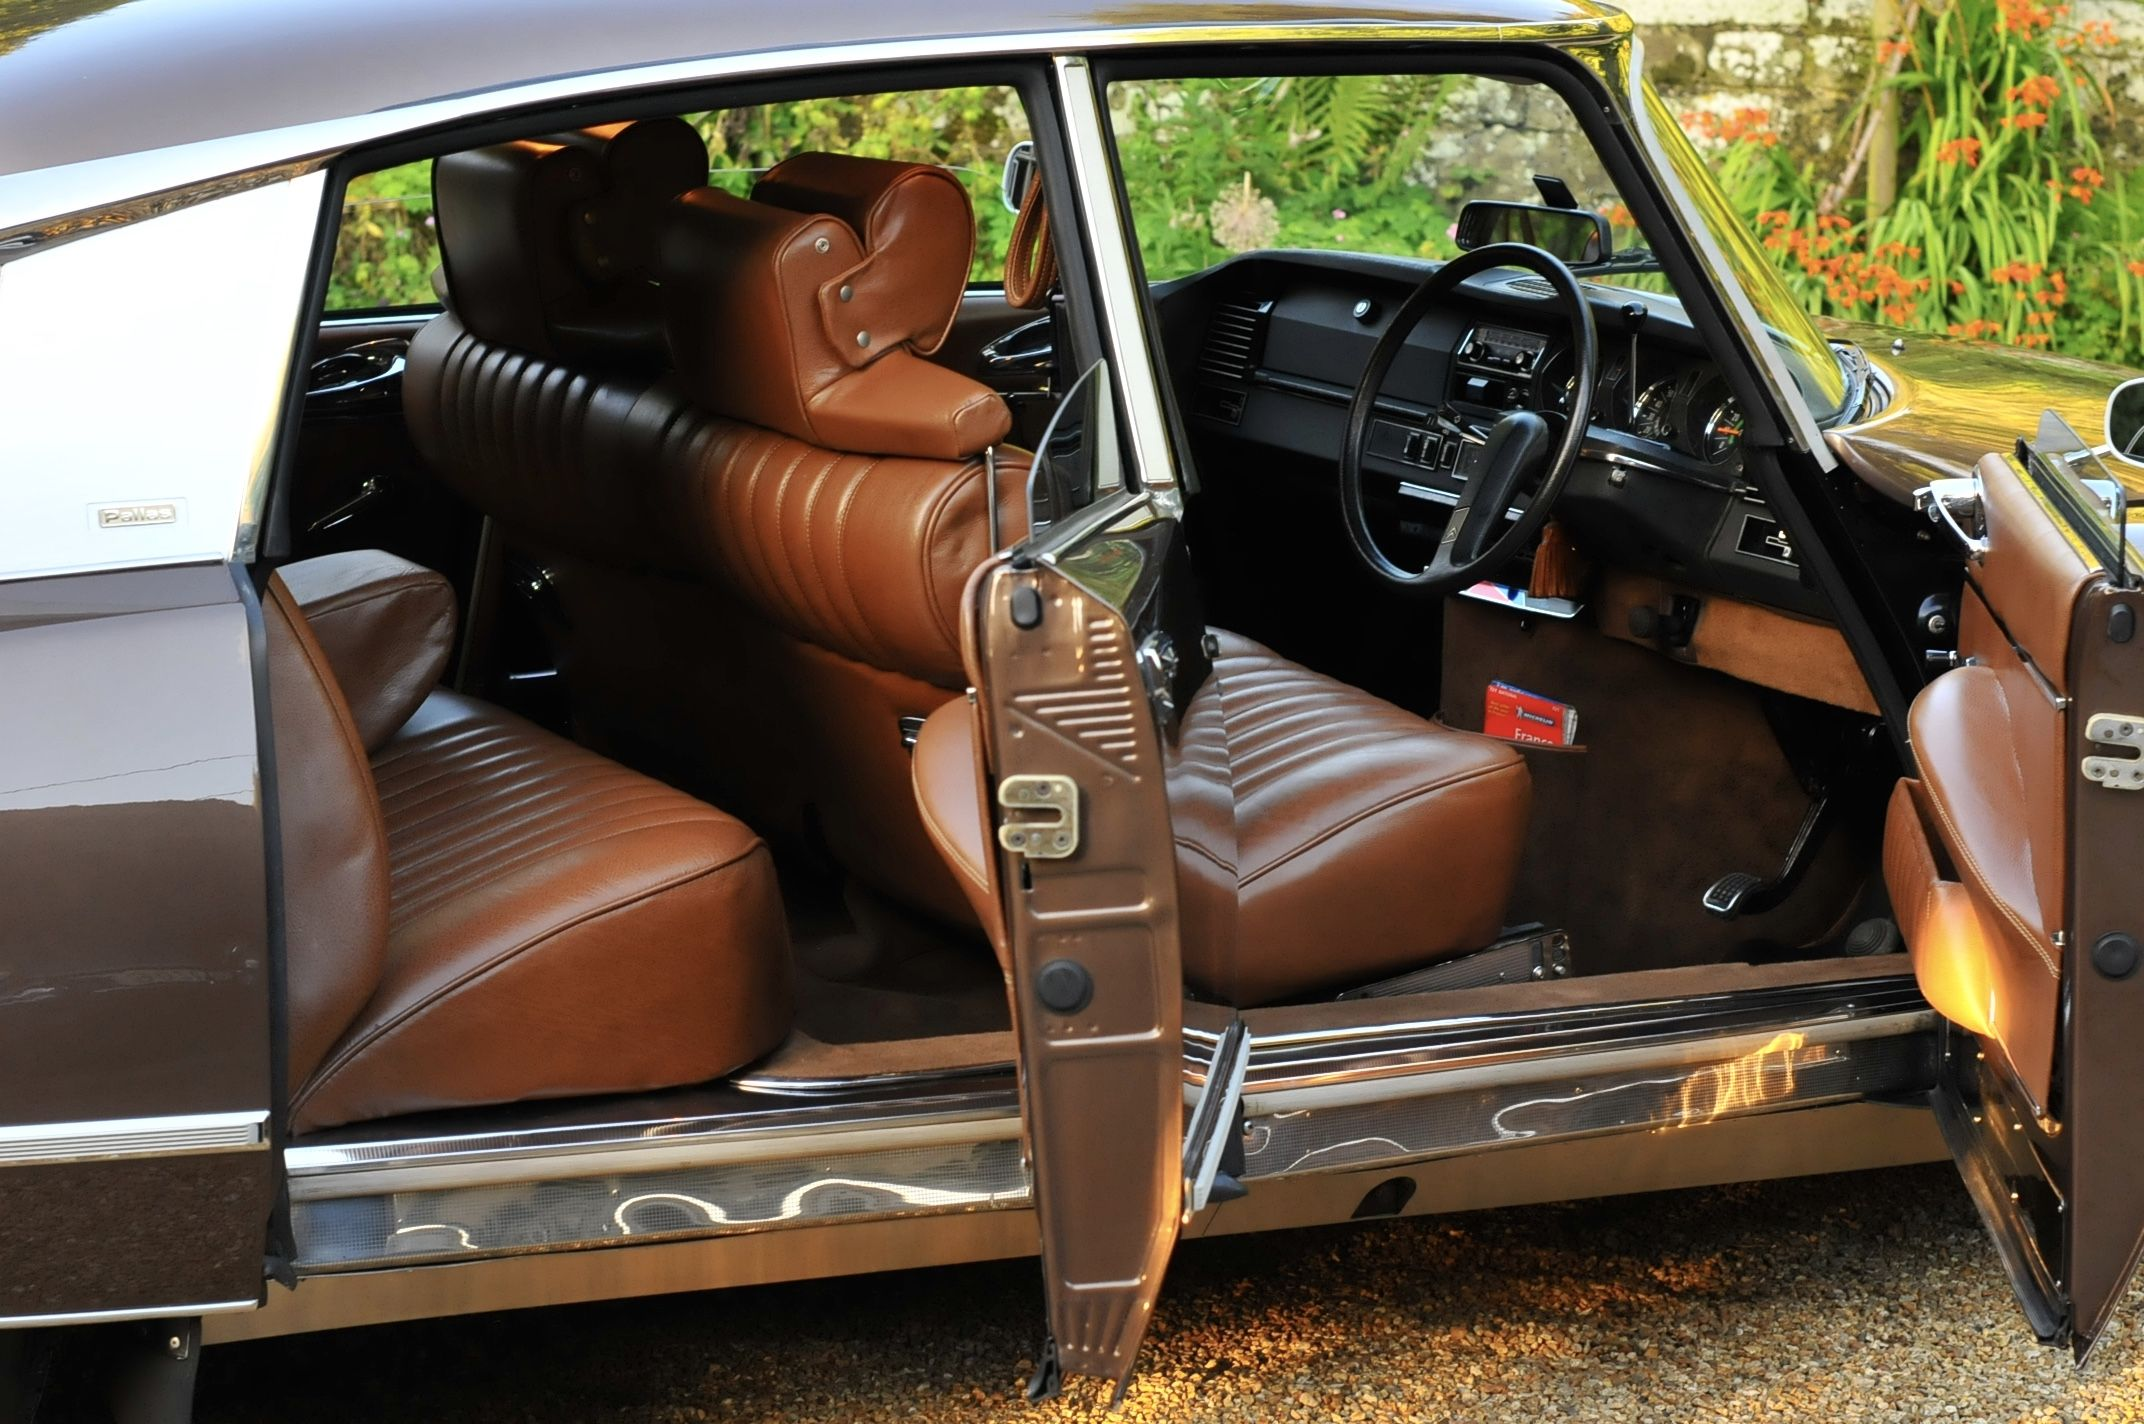 Beamix Vloervlak Egalisatie 770 Citroen Cx Break Interieur